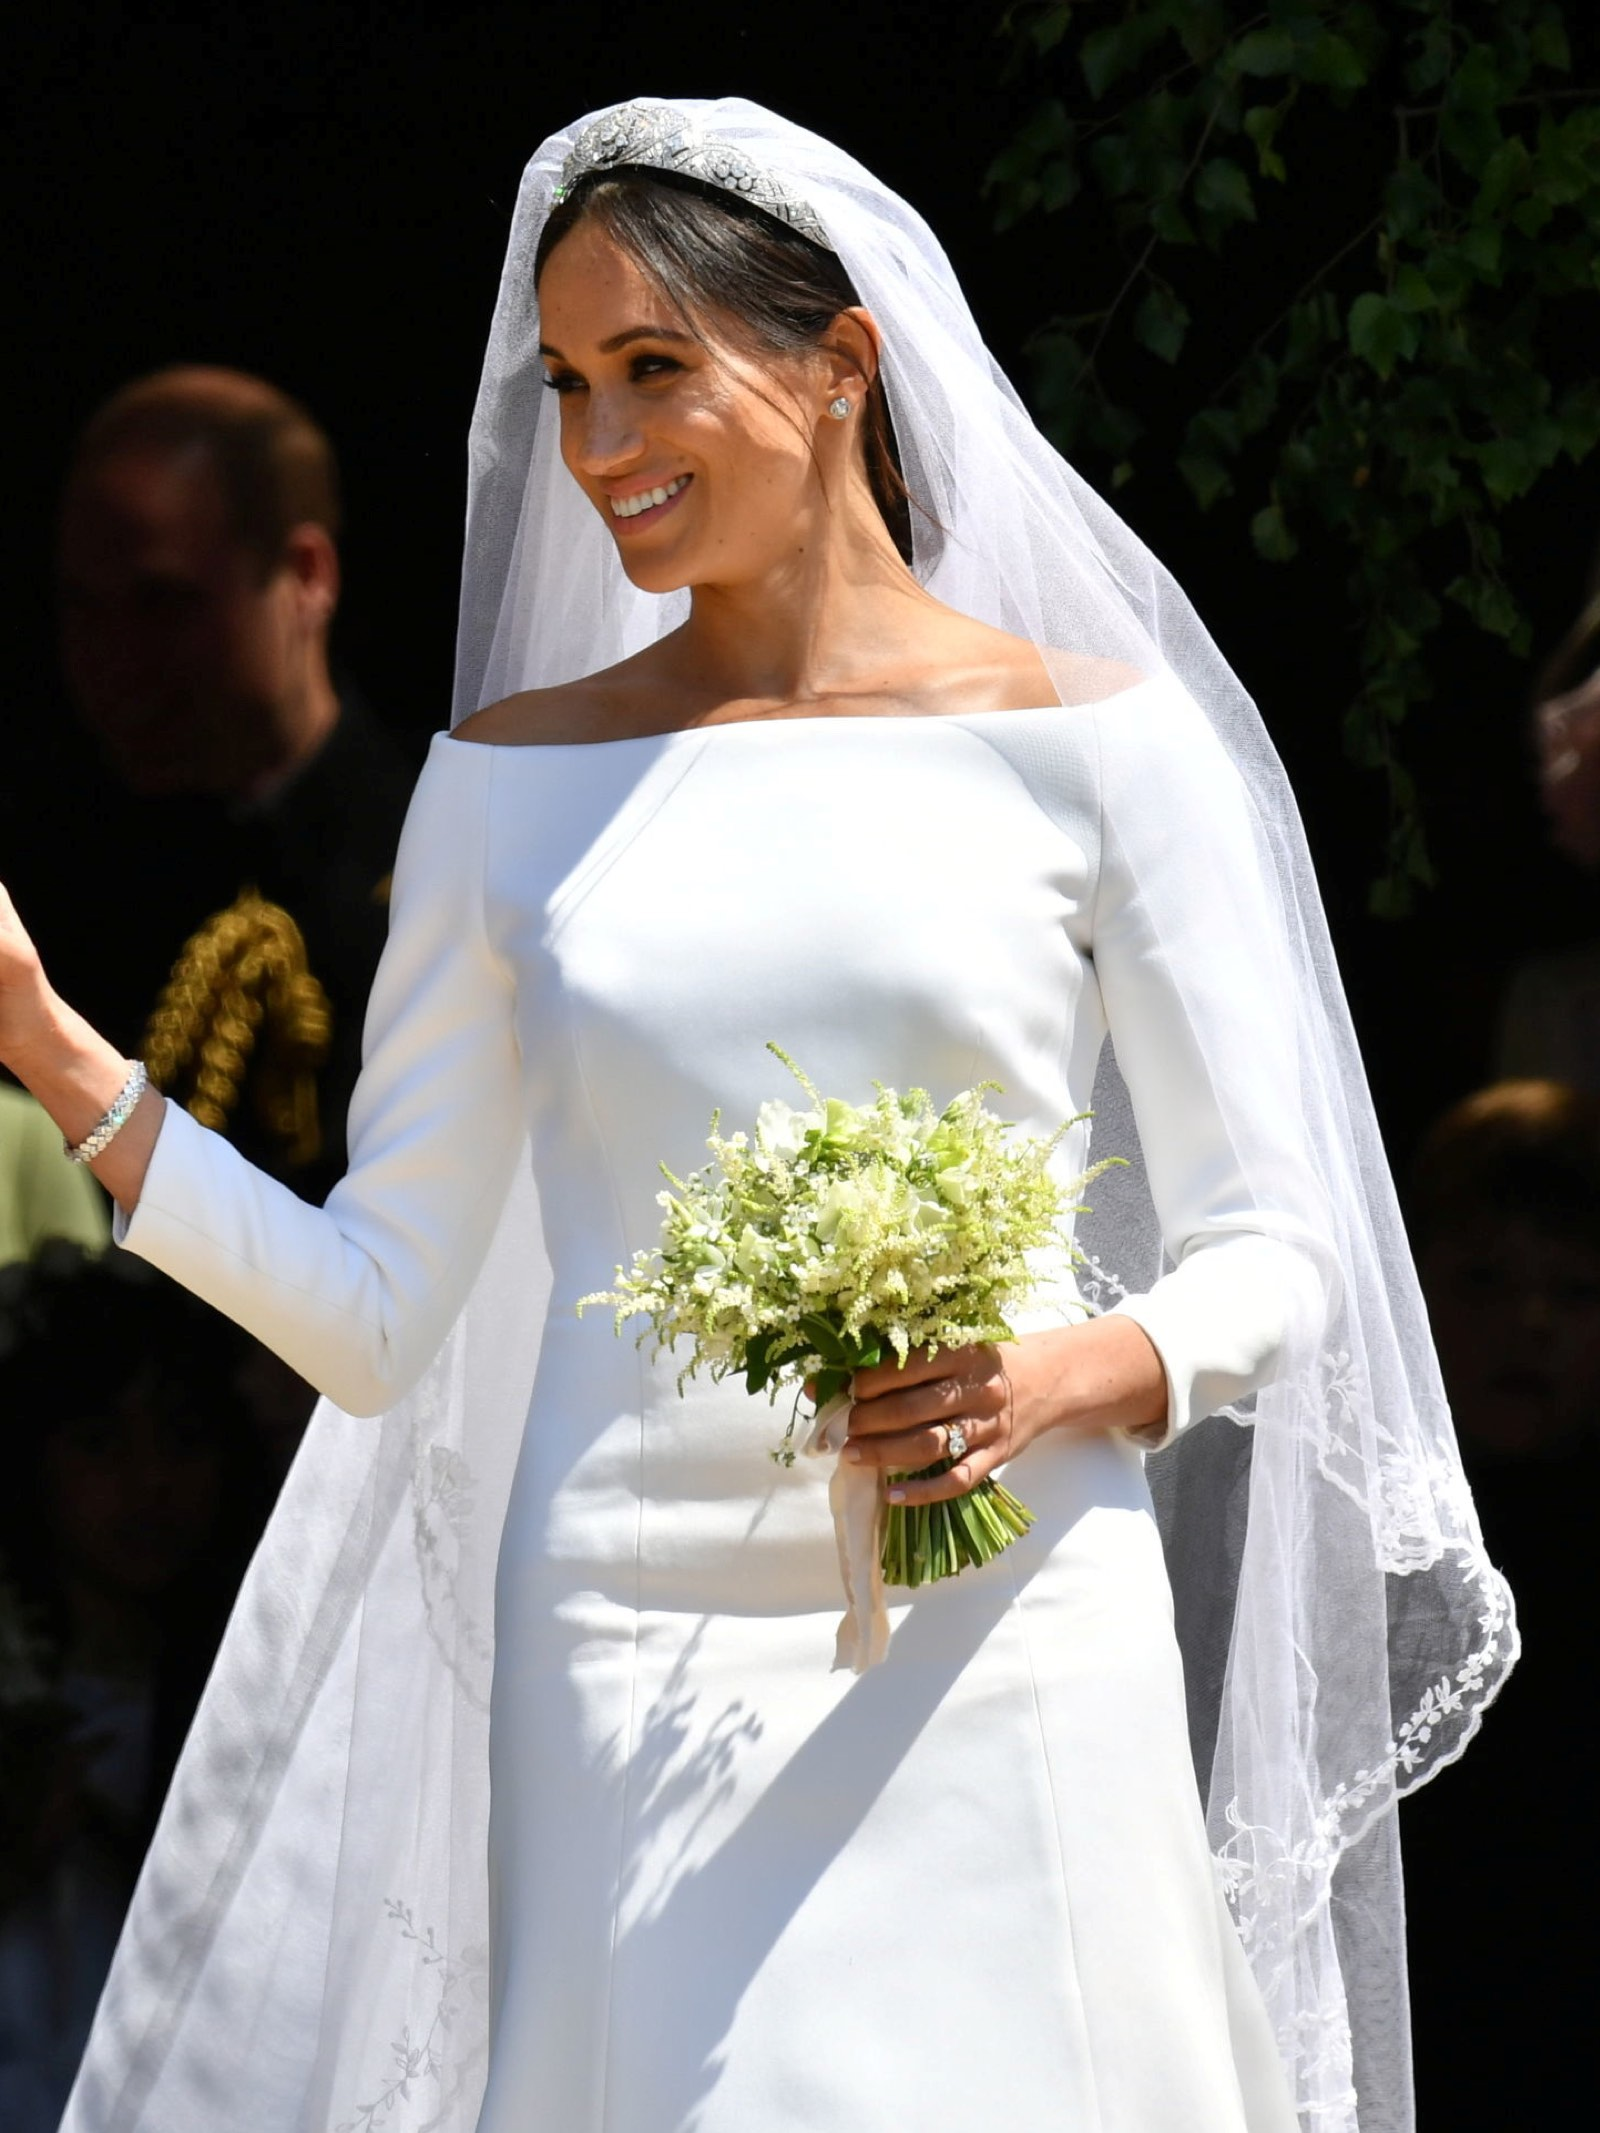 Royal wedding: Everything you need to know about Meghan\'s dress